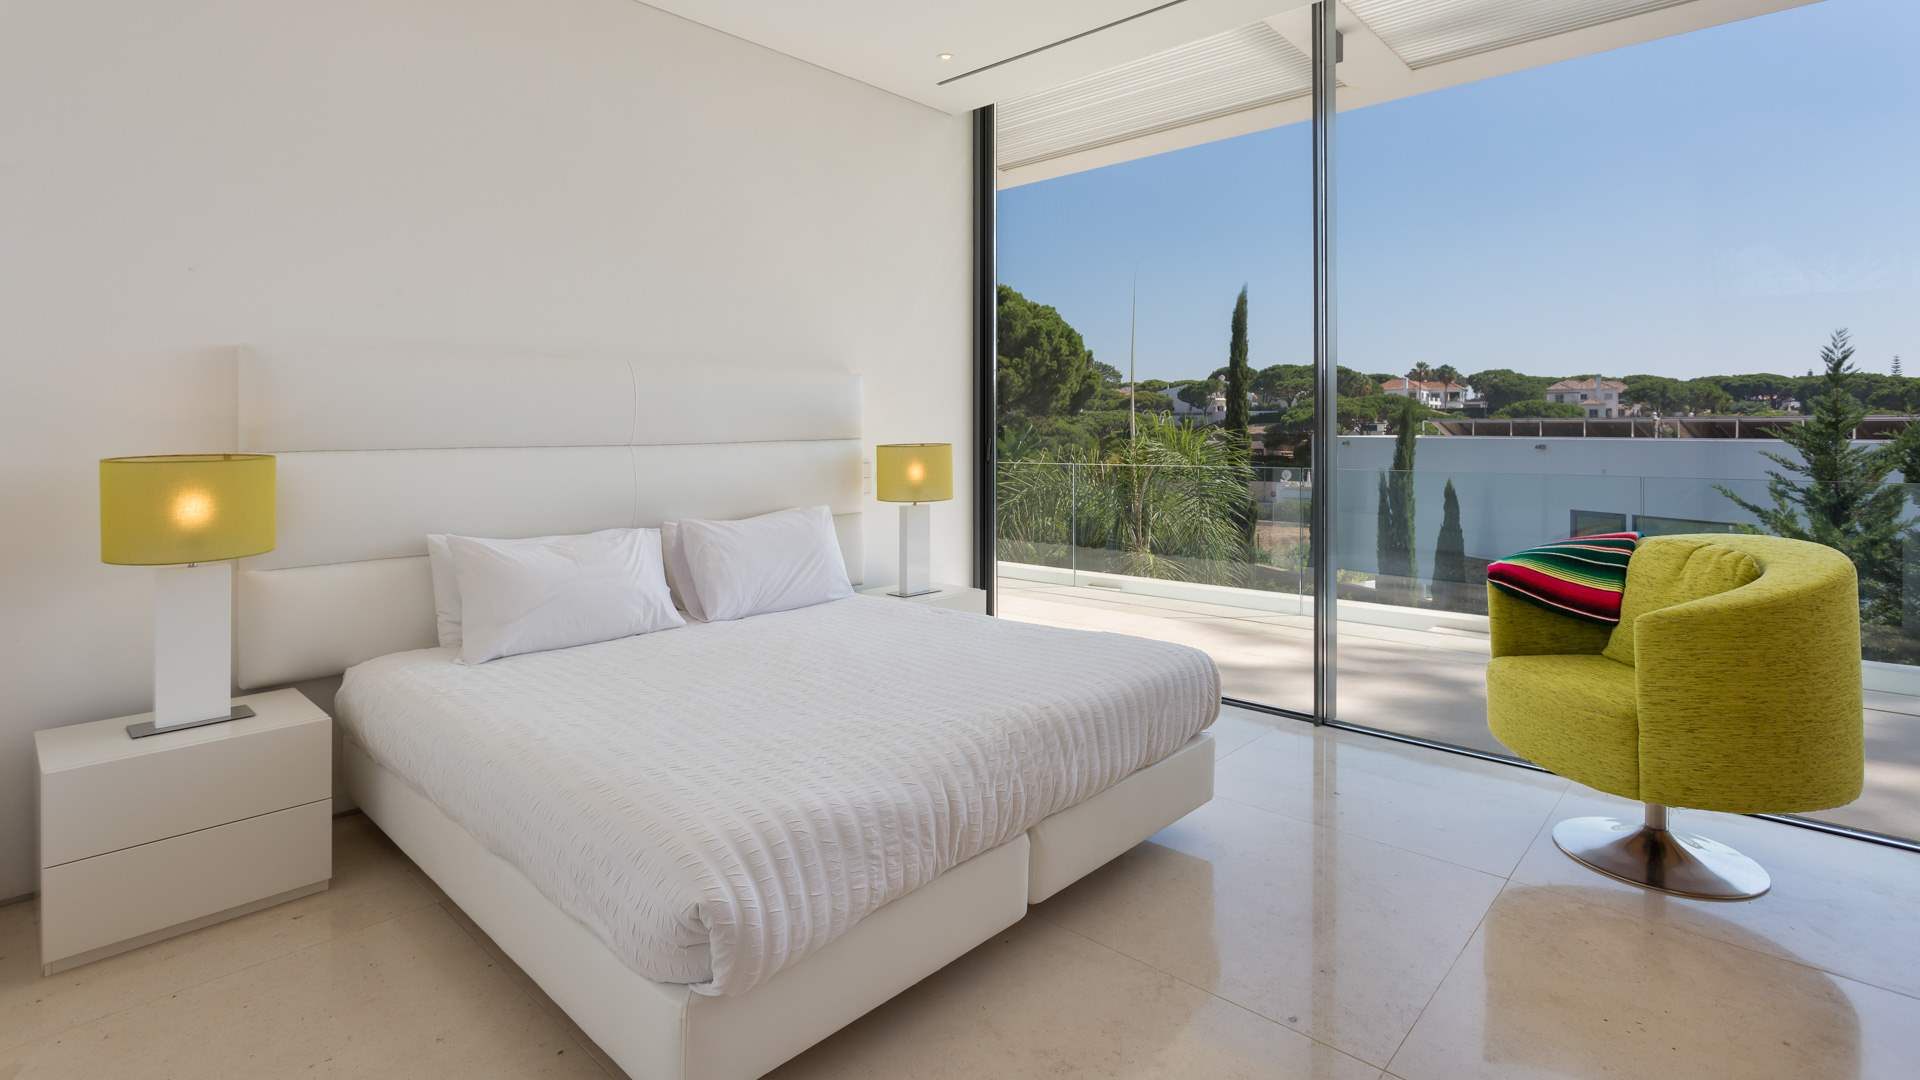 Villa Felicity, 4 bedroom villa in Vale do Lobo, Algarve Photo #20